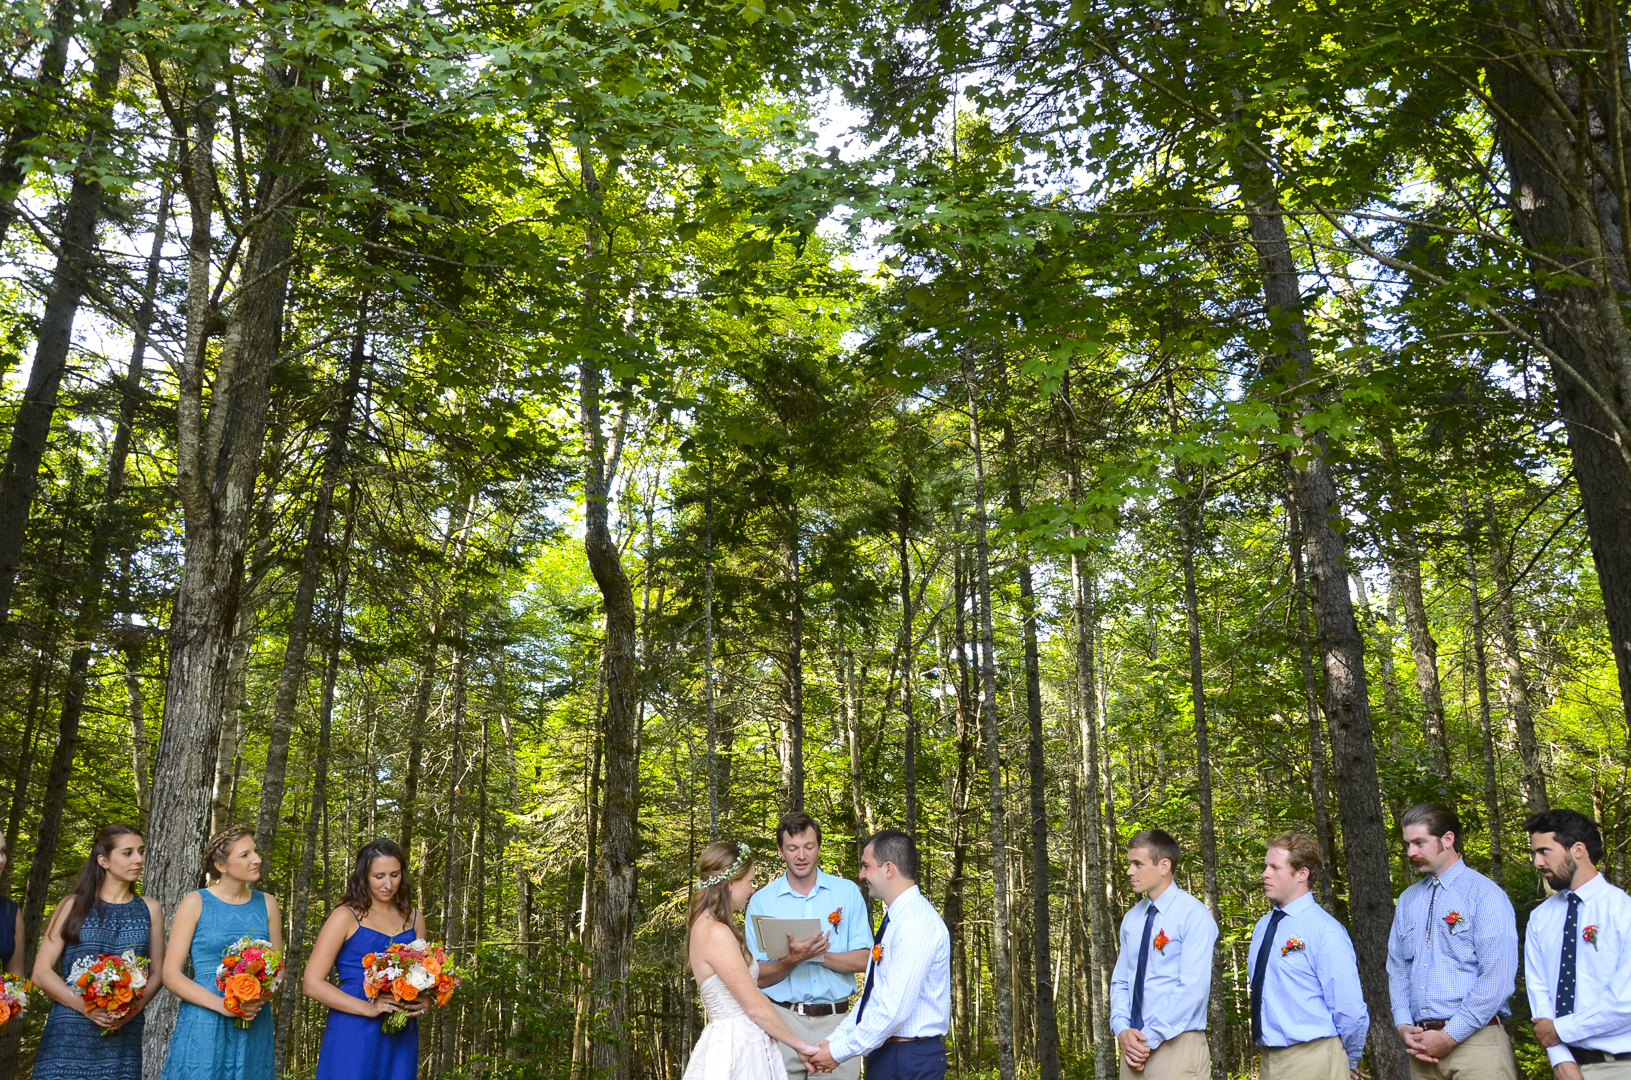 Jessie and Matt got married where they met as camp counselors